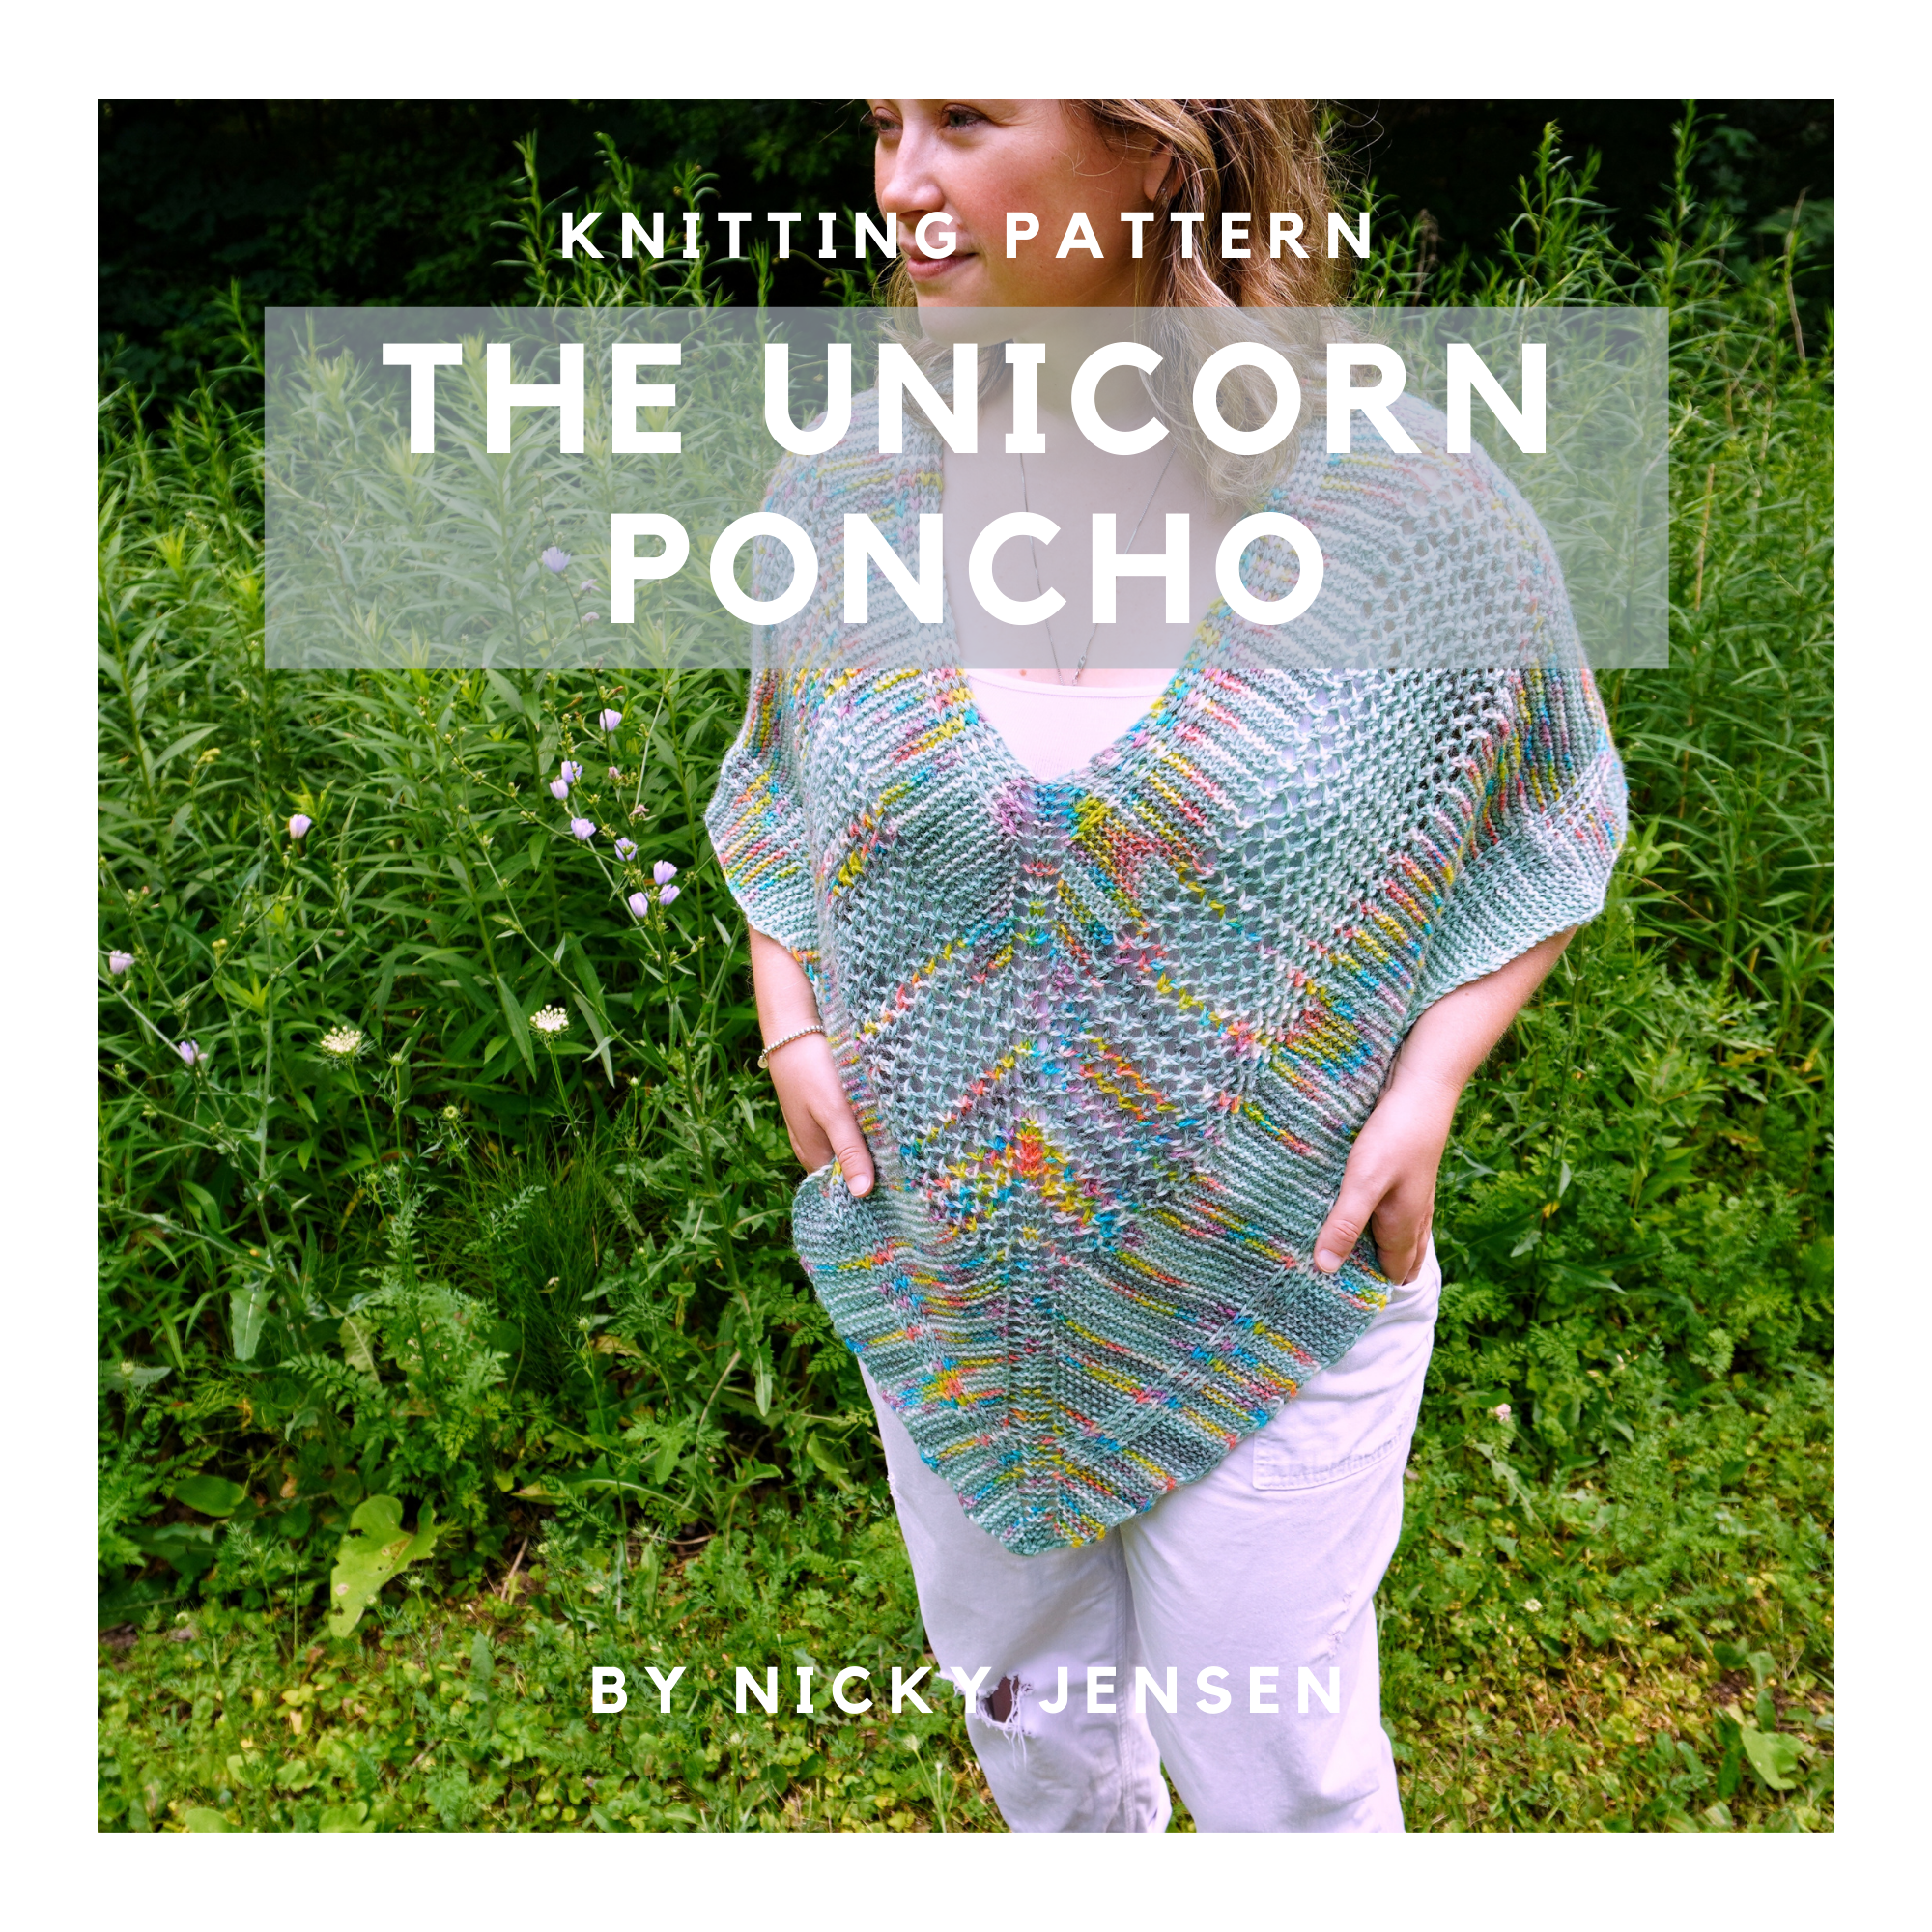 The Unicorn Poncho